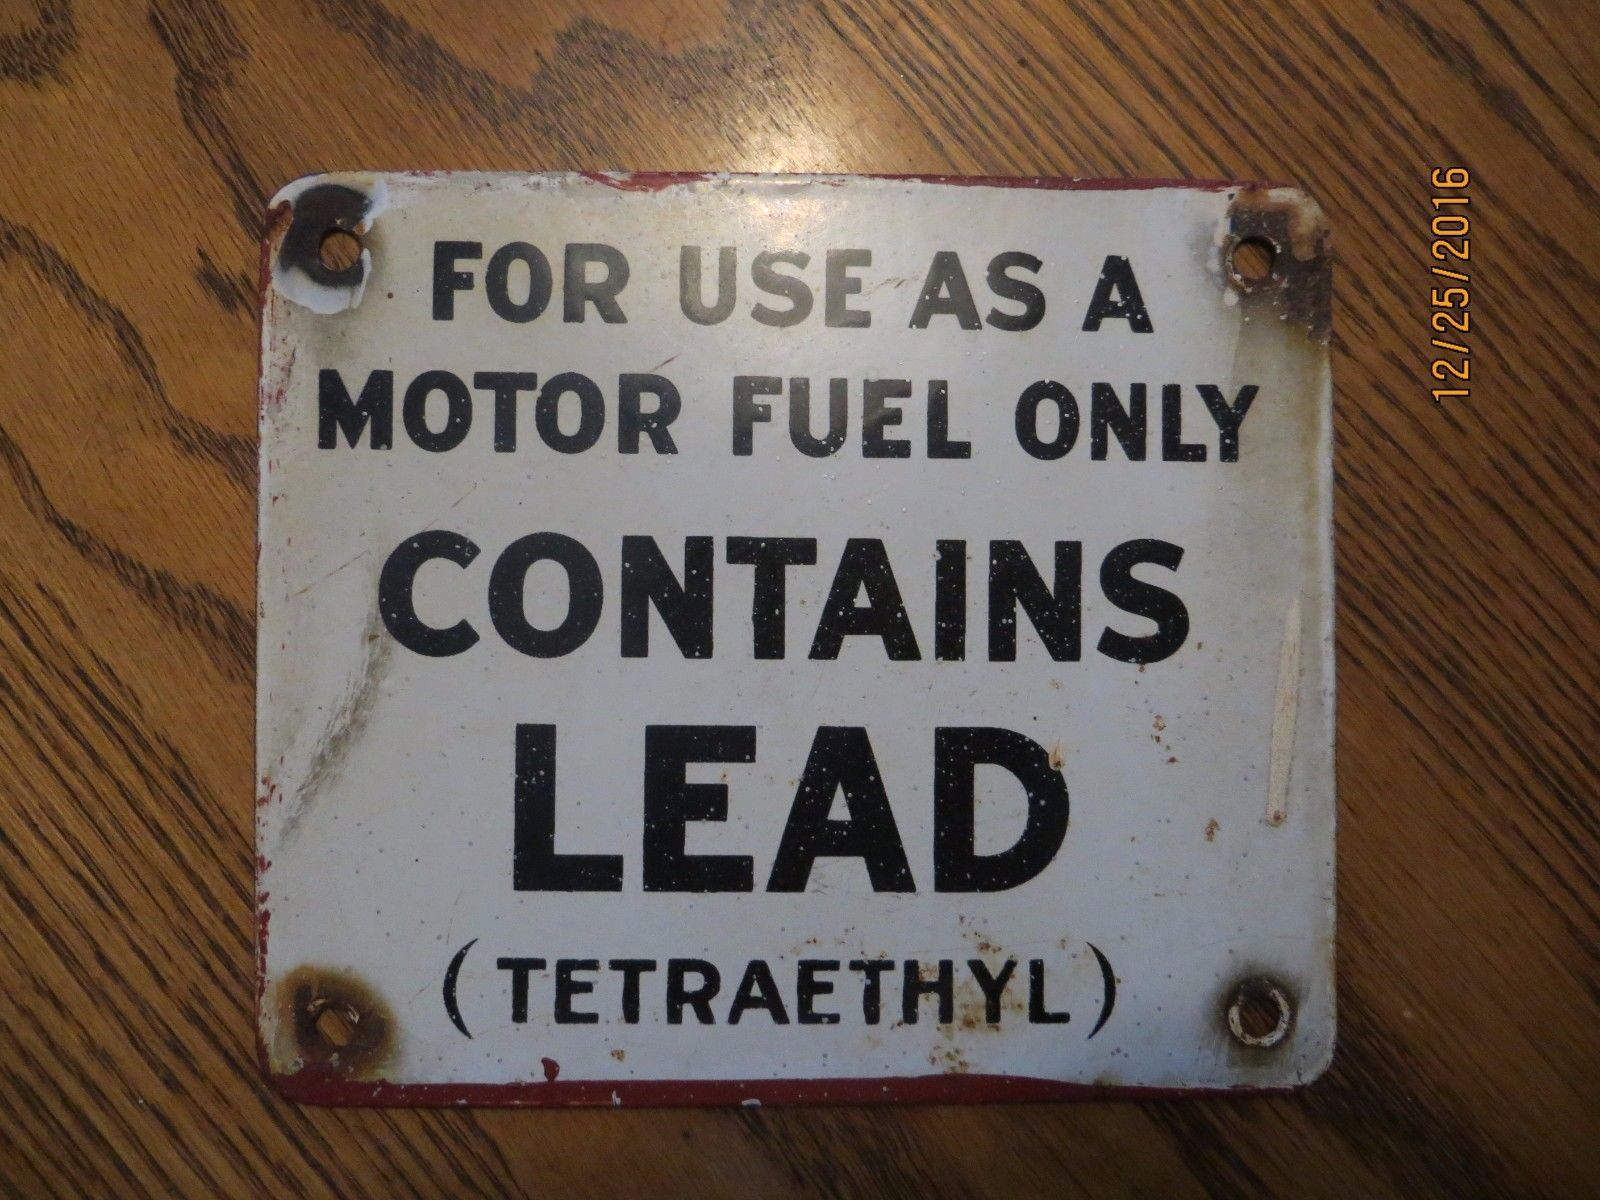 ORIGINAL, FOR USE AS A MOTOR FUEL ONLY CONTAINS LEAD TETRAETHYL PORCELAIN SIGN